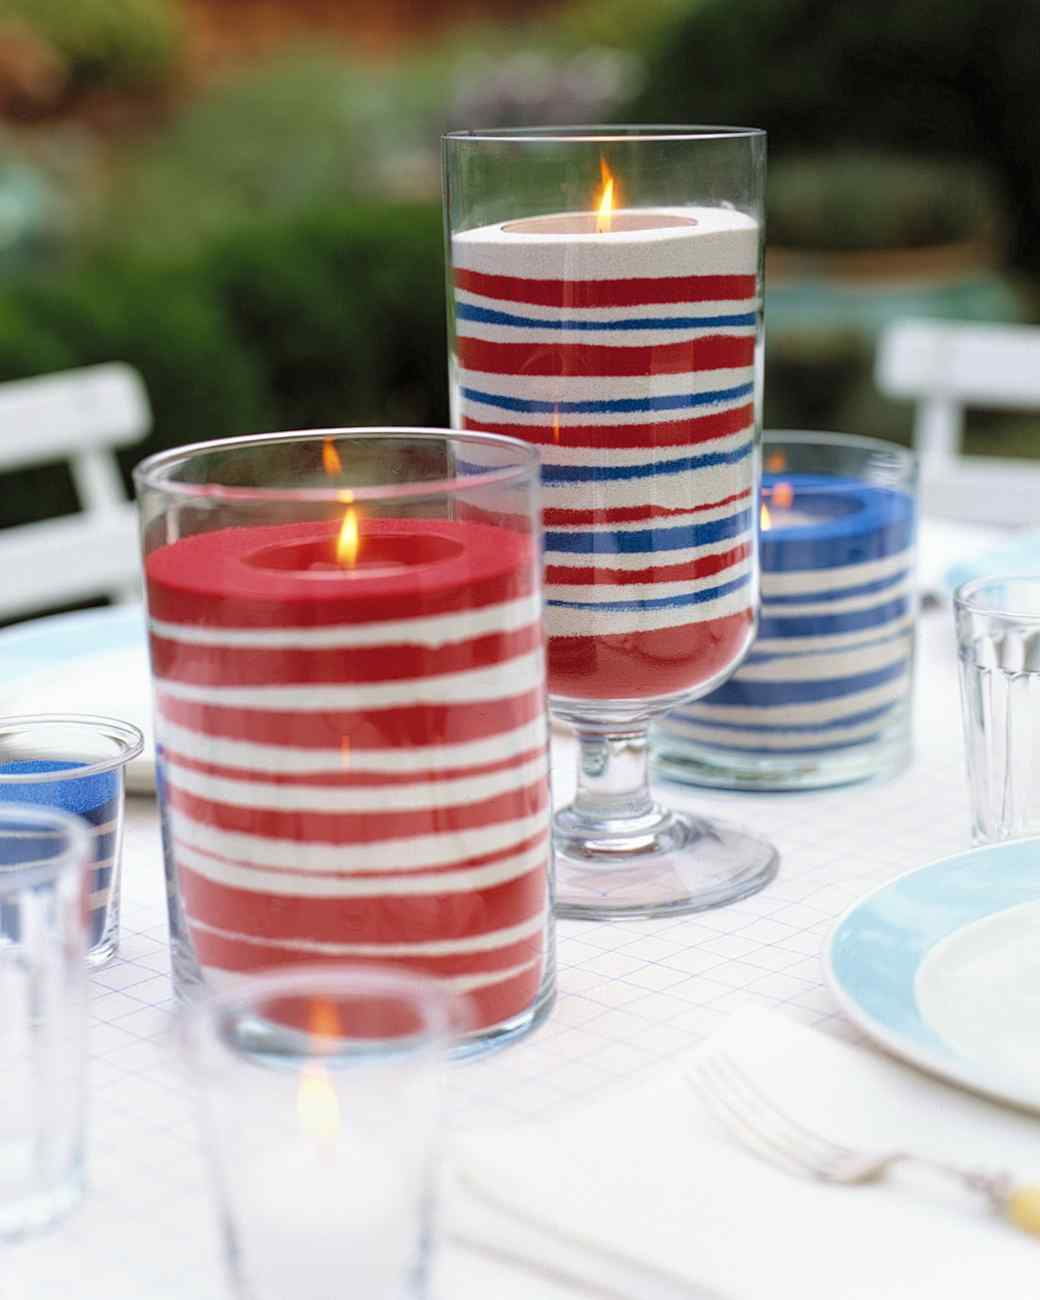 These simple sand candles are a great last minute decoration that the kids will love to help out with and the adults will admire. Check out the how-to at marthastewart.com,  here .